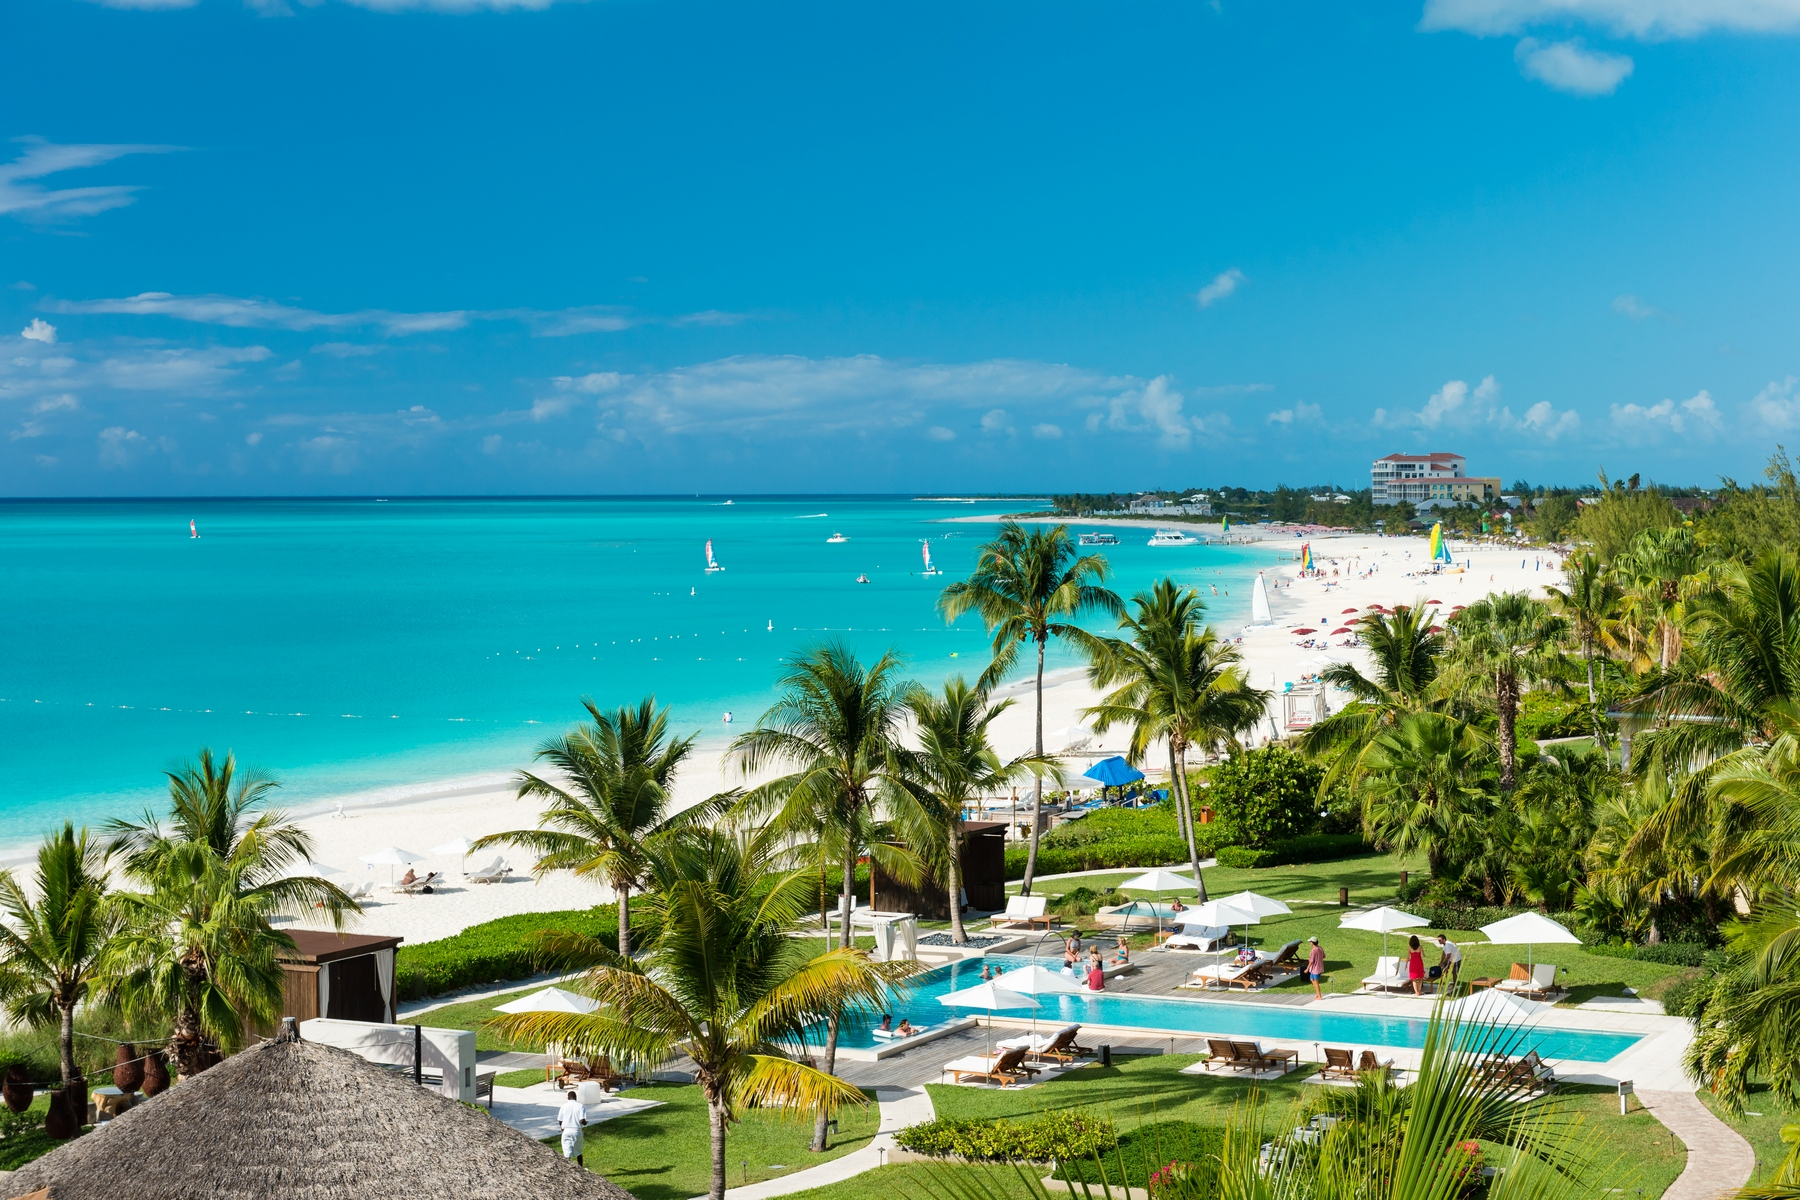 Condominium for Sale at Grace Bay Club - Suite C500 Grace Bay Resorts, Grace Bay, Providenciales Turks And Caicos Islands